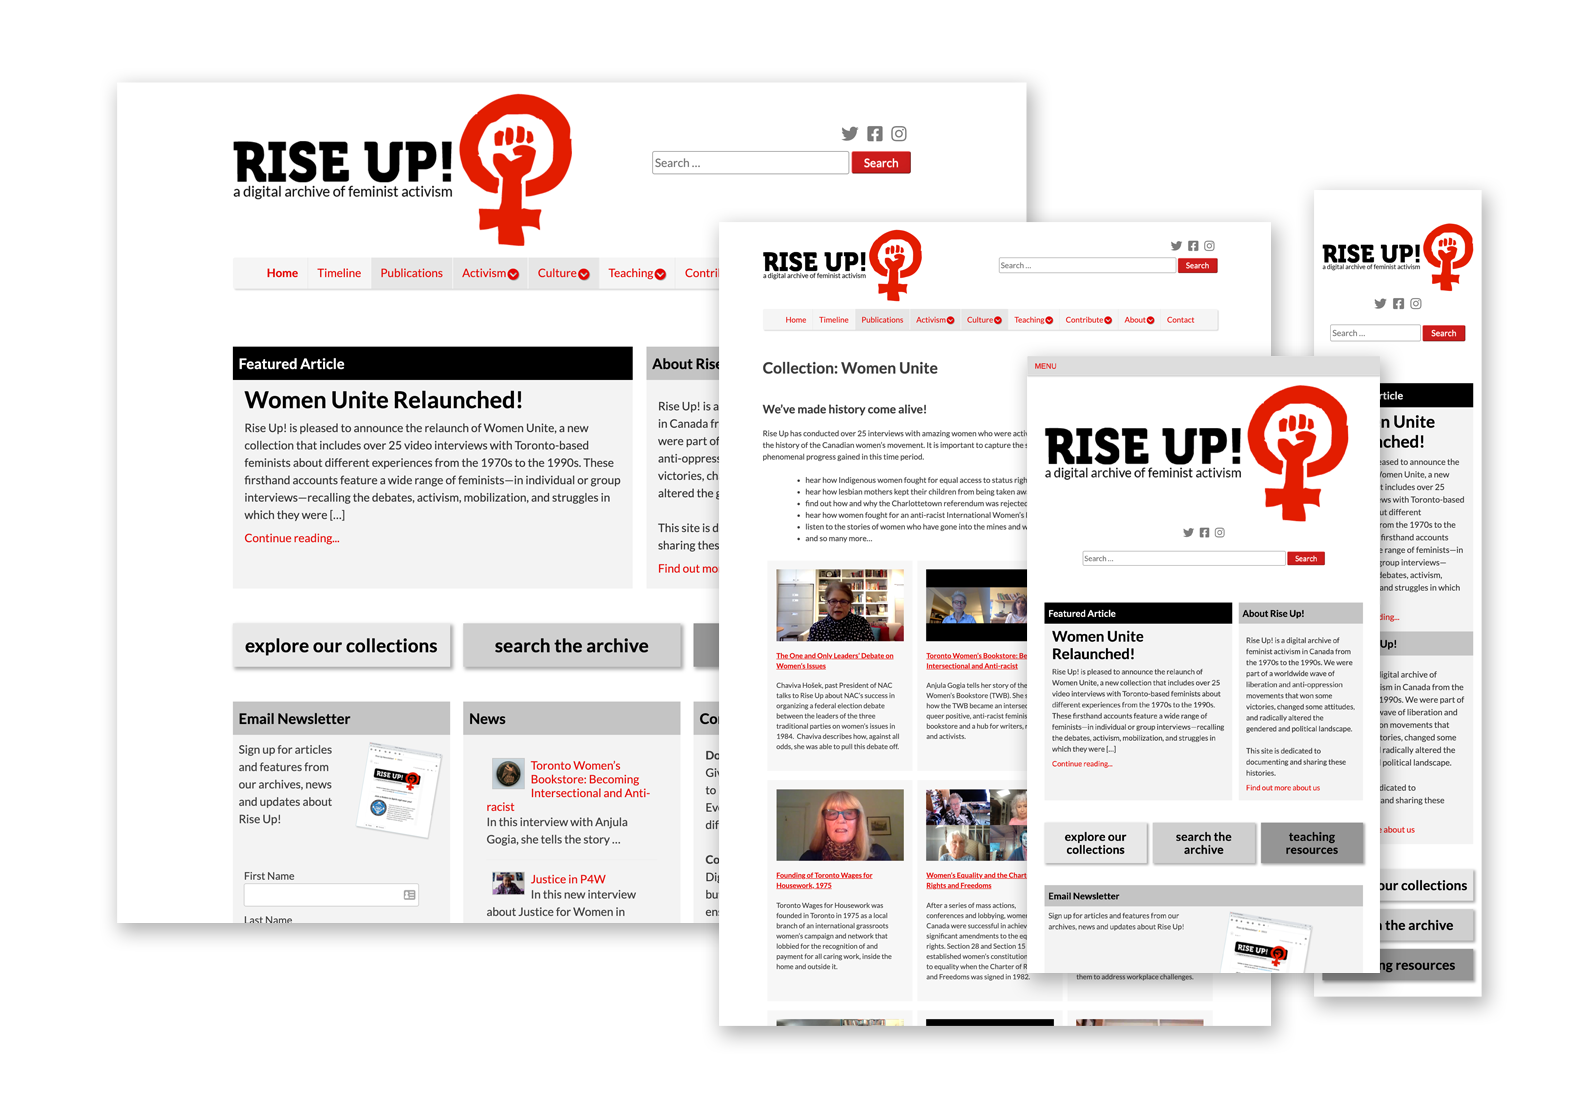 Display of the Rise Up website in various formats